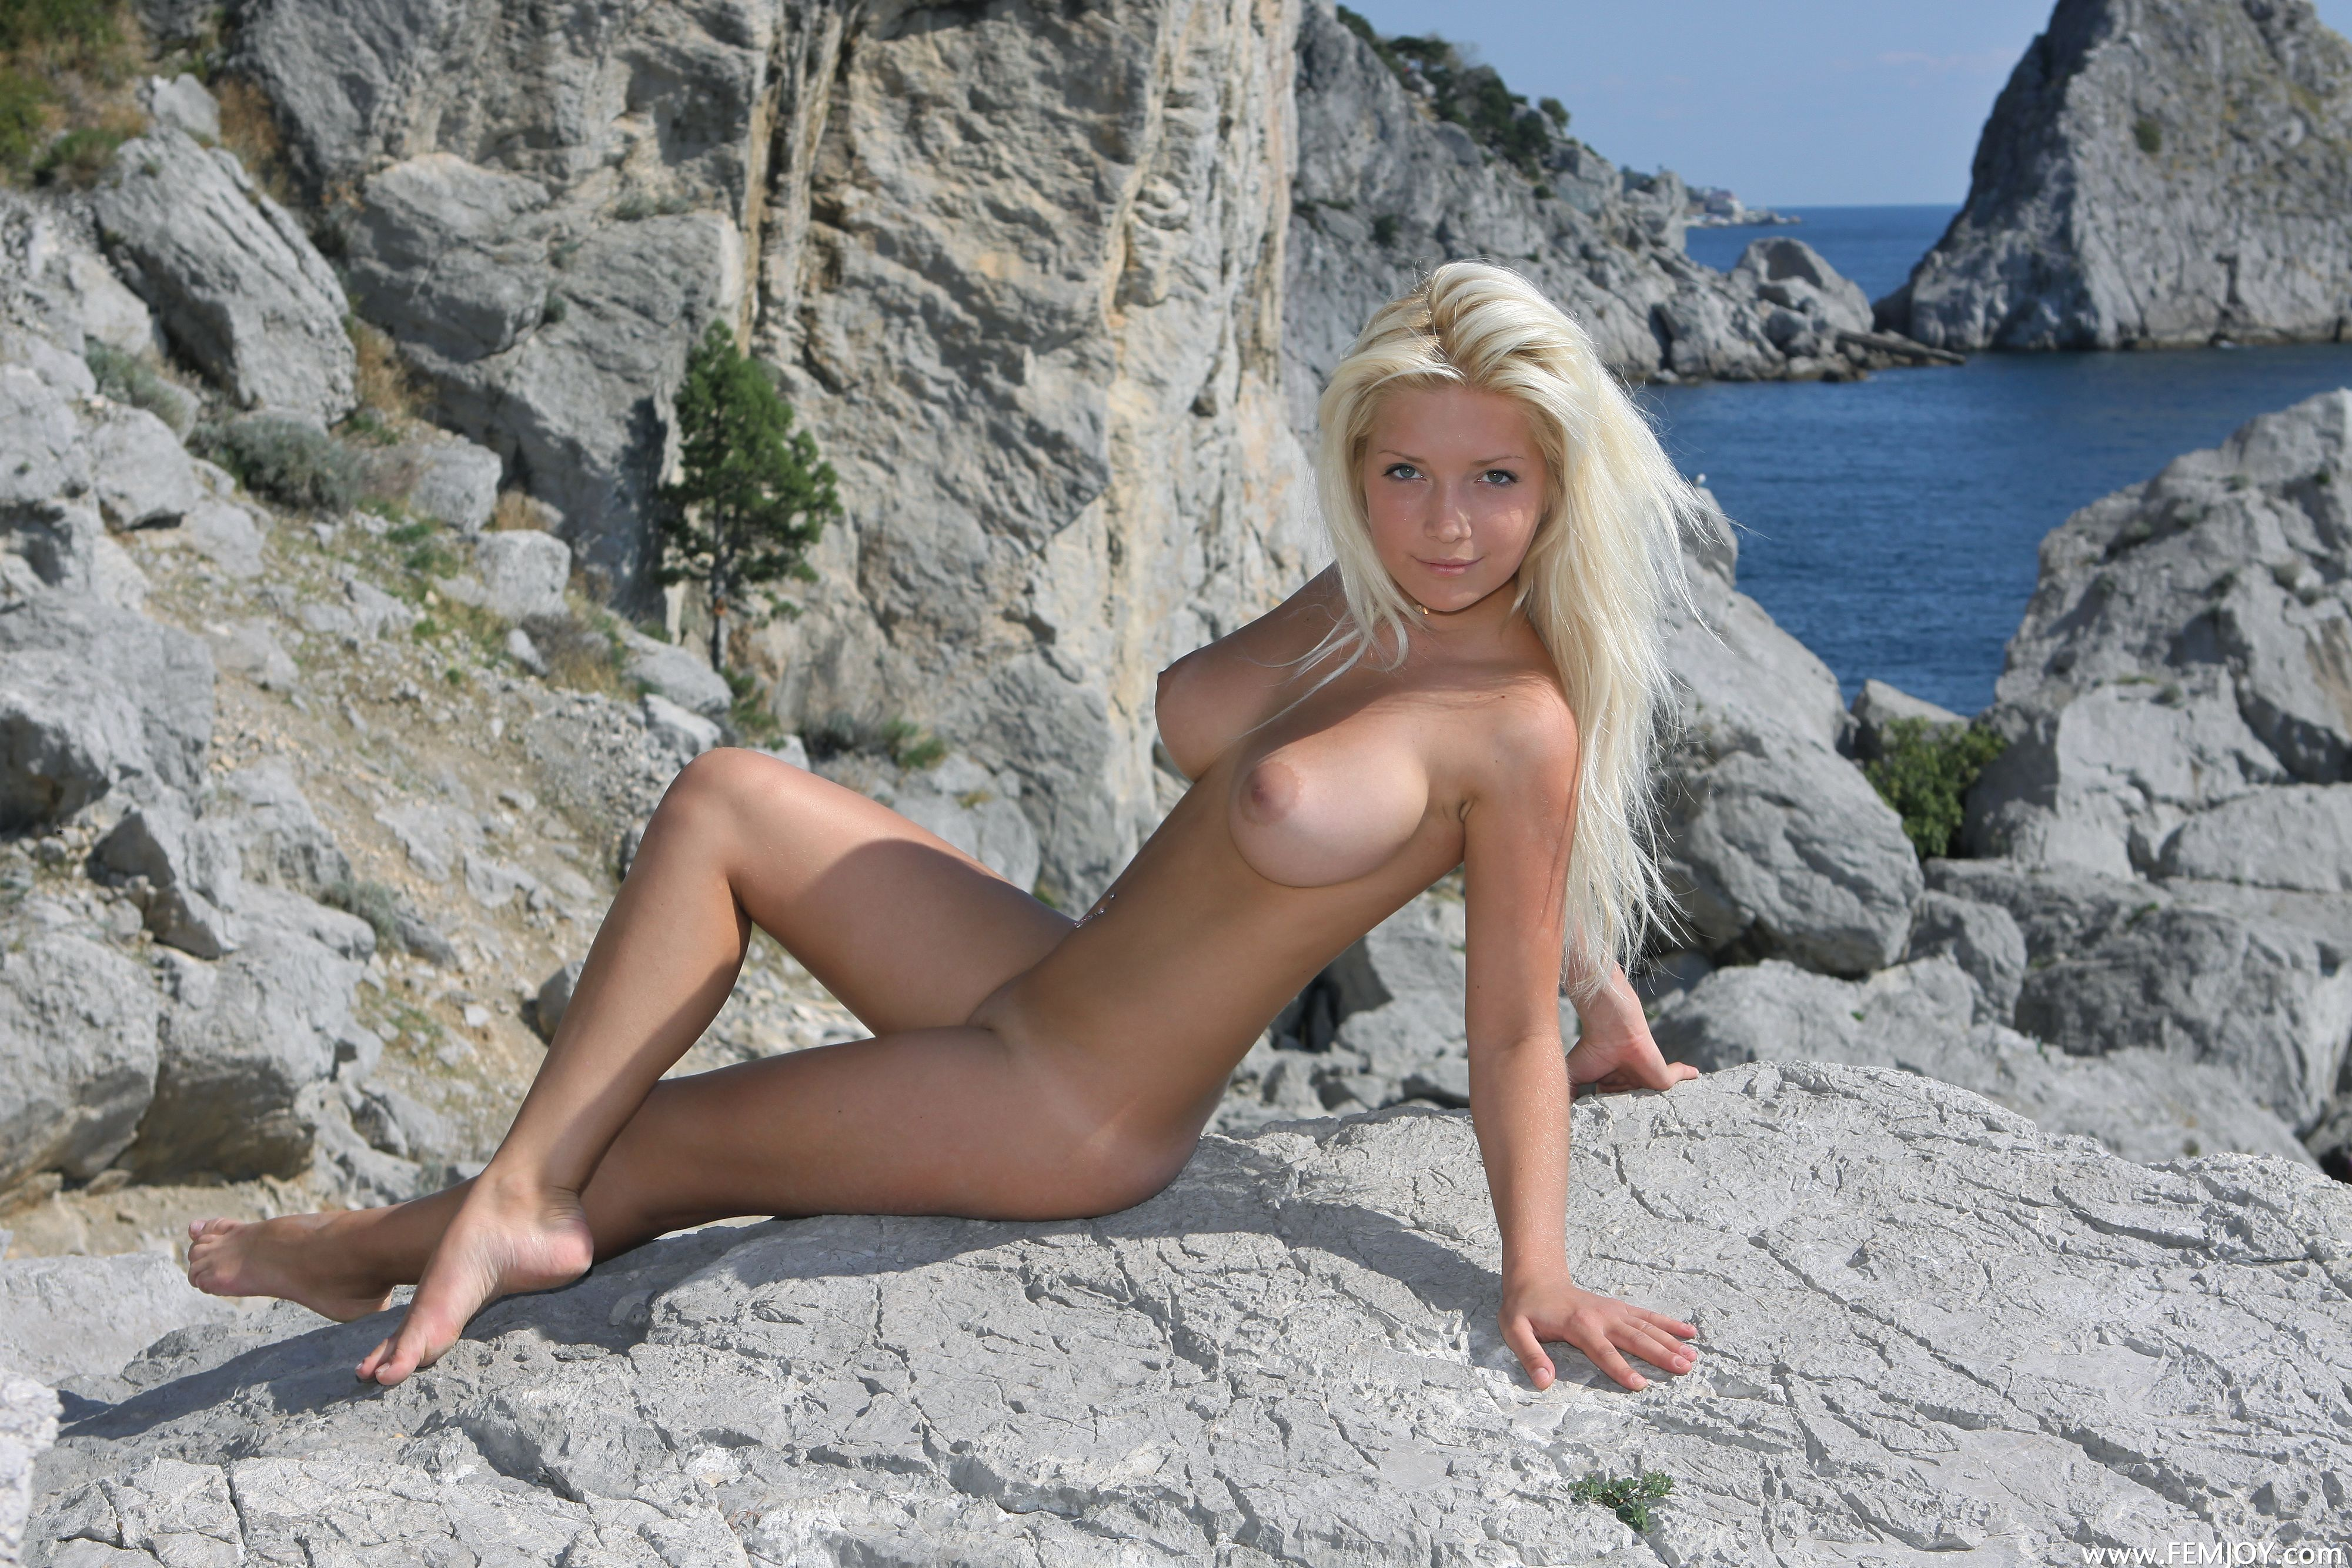 HDnsfw Porn Images - View Subreddit: /r/HDnsfw :: ImagePorn